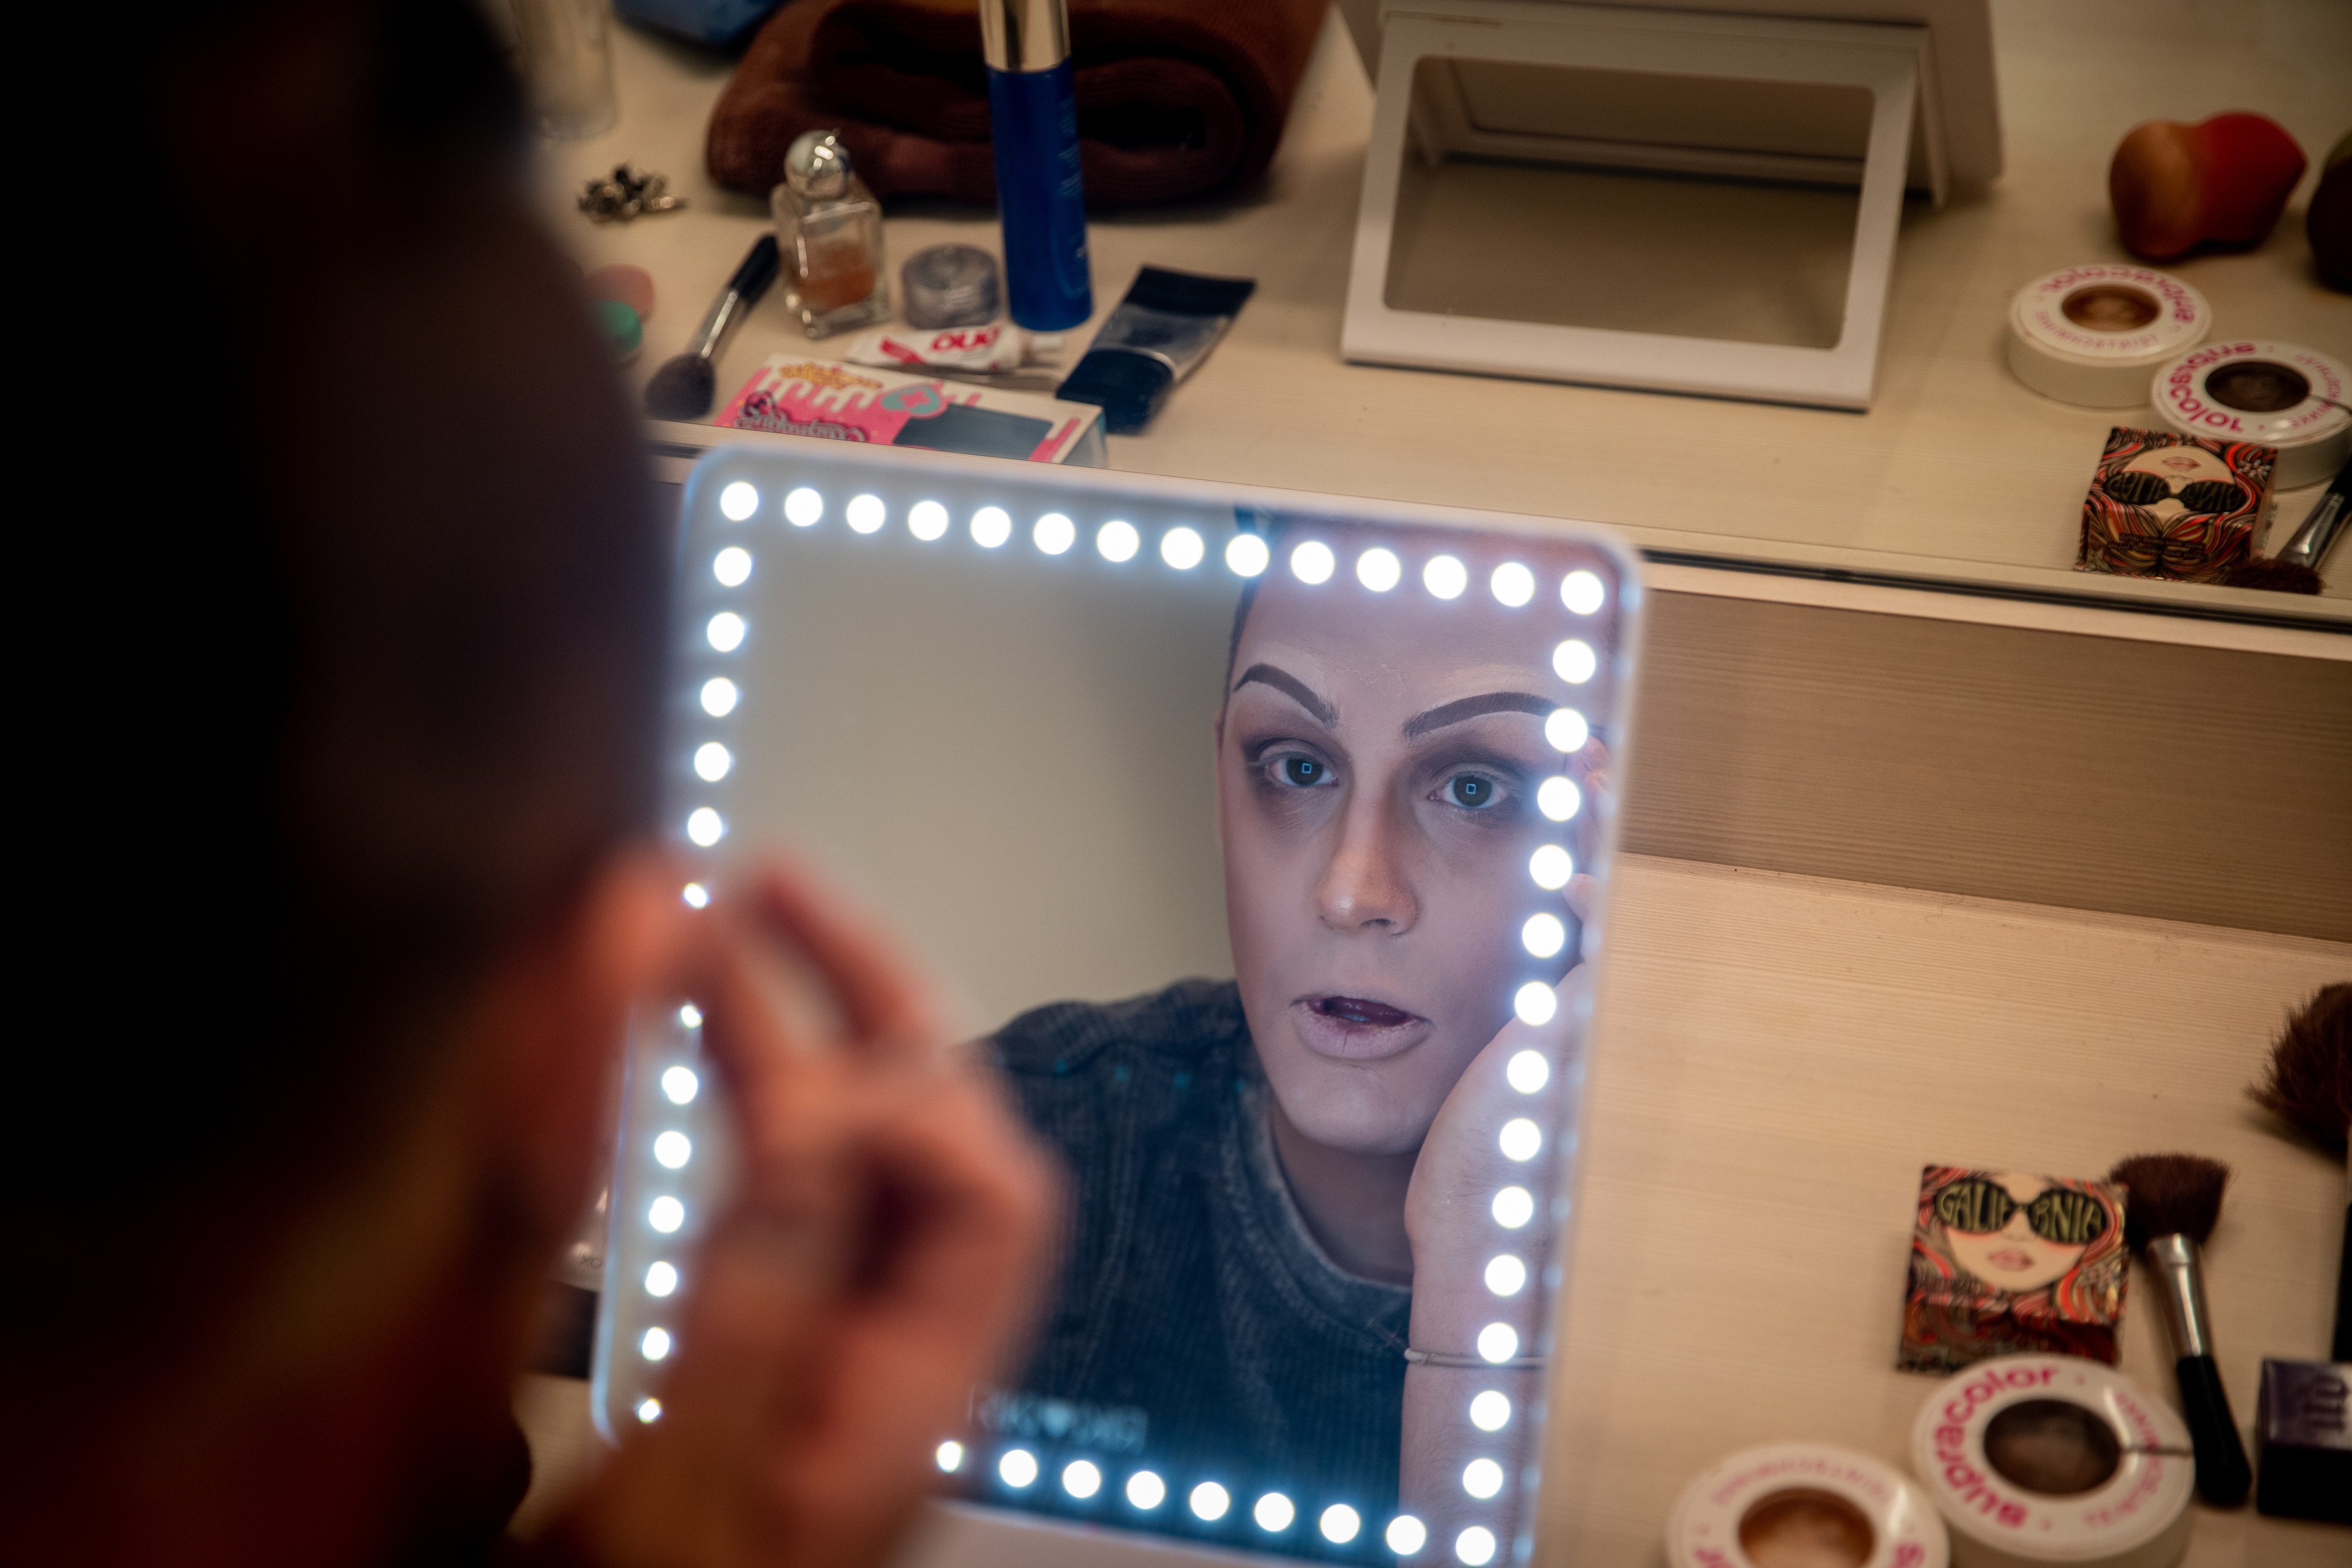 Claire Voyant about halfway through her drag makeup tutorial looking on her mirror.